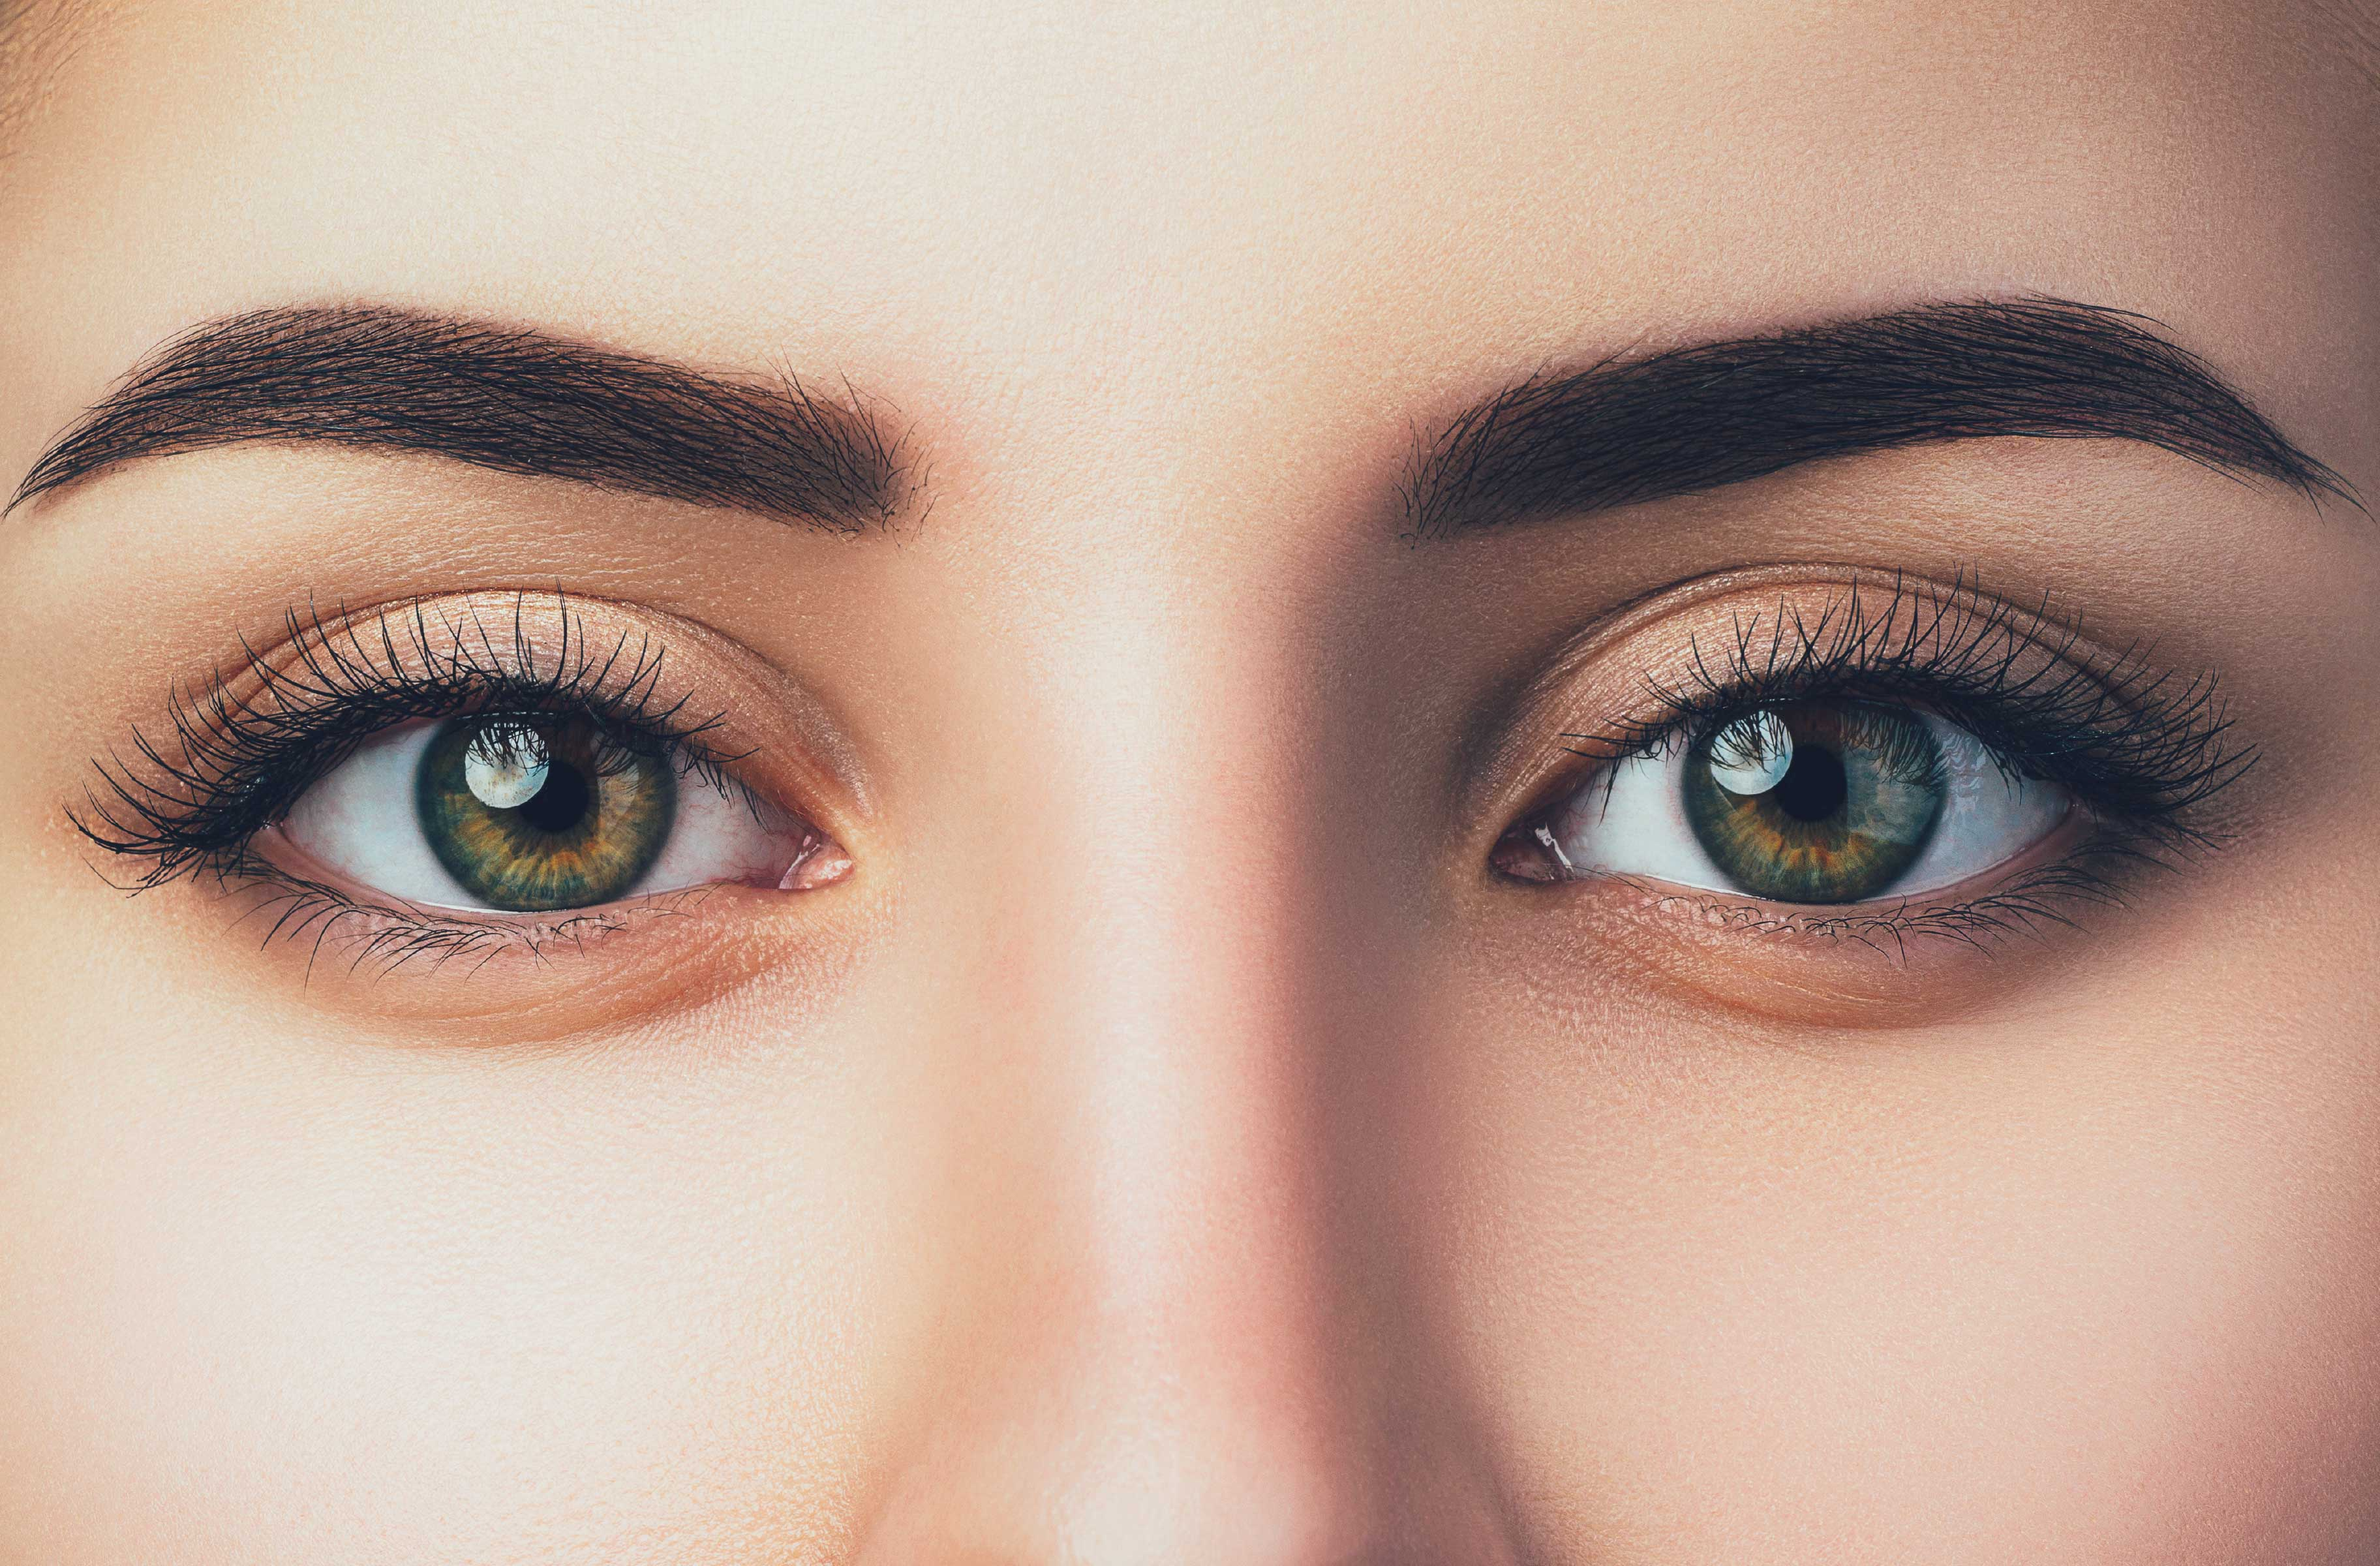 5 Myths About Your Eyes